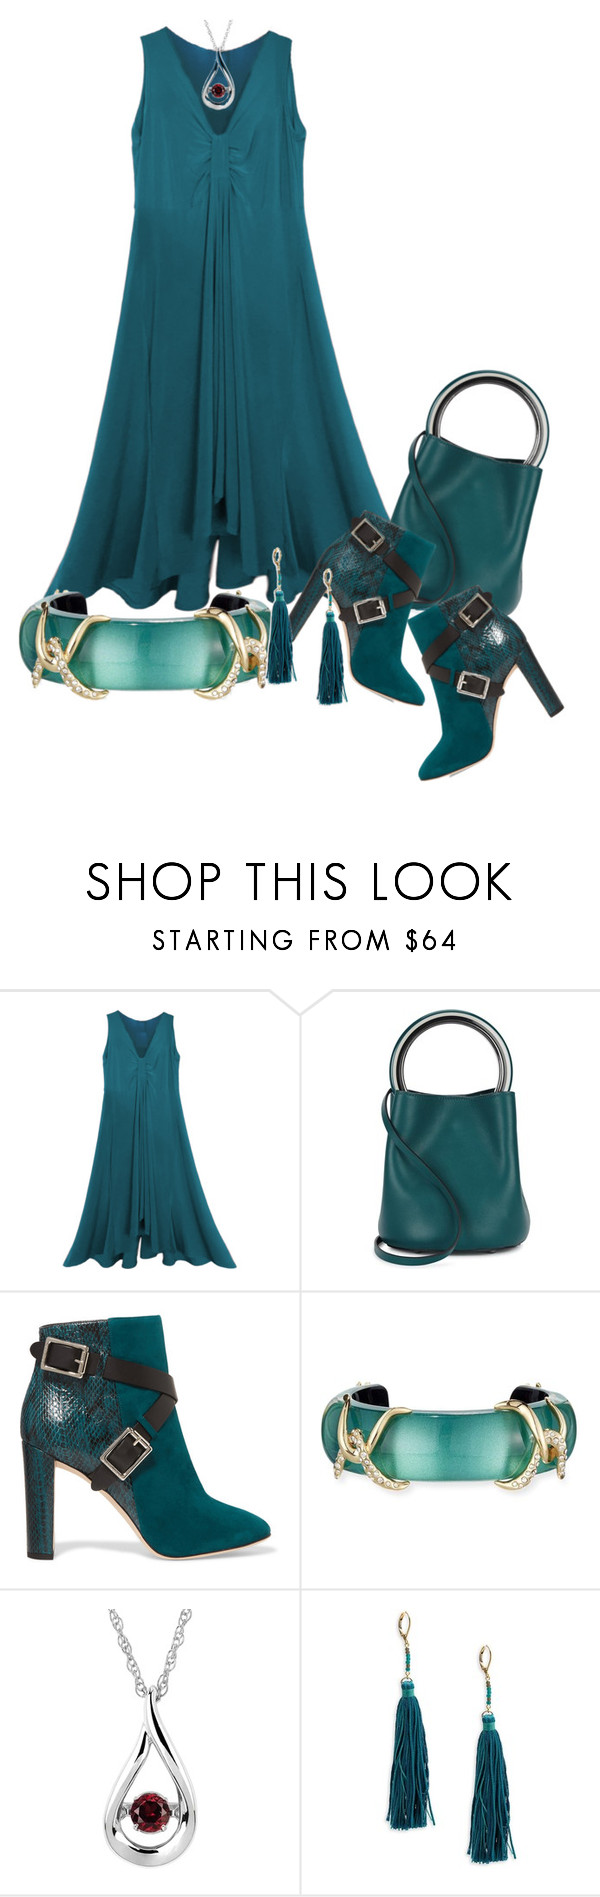 """""""Empire Dress in Teal"""" by jakenpink ❤ liked on Polyvore featuring Marni, Jimmy Choo, Alexis Bittar, Boston Bay Diamonds and Shashi"""